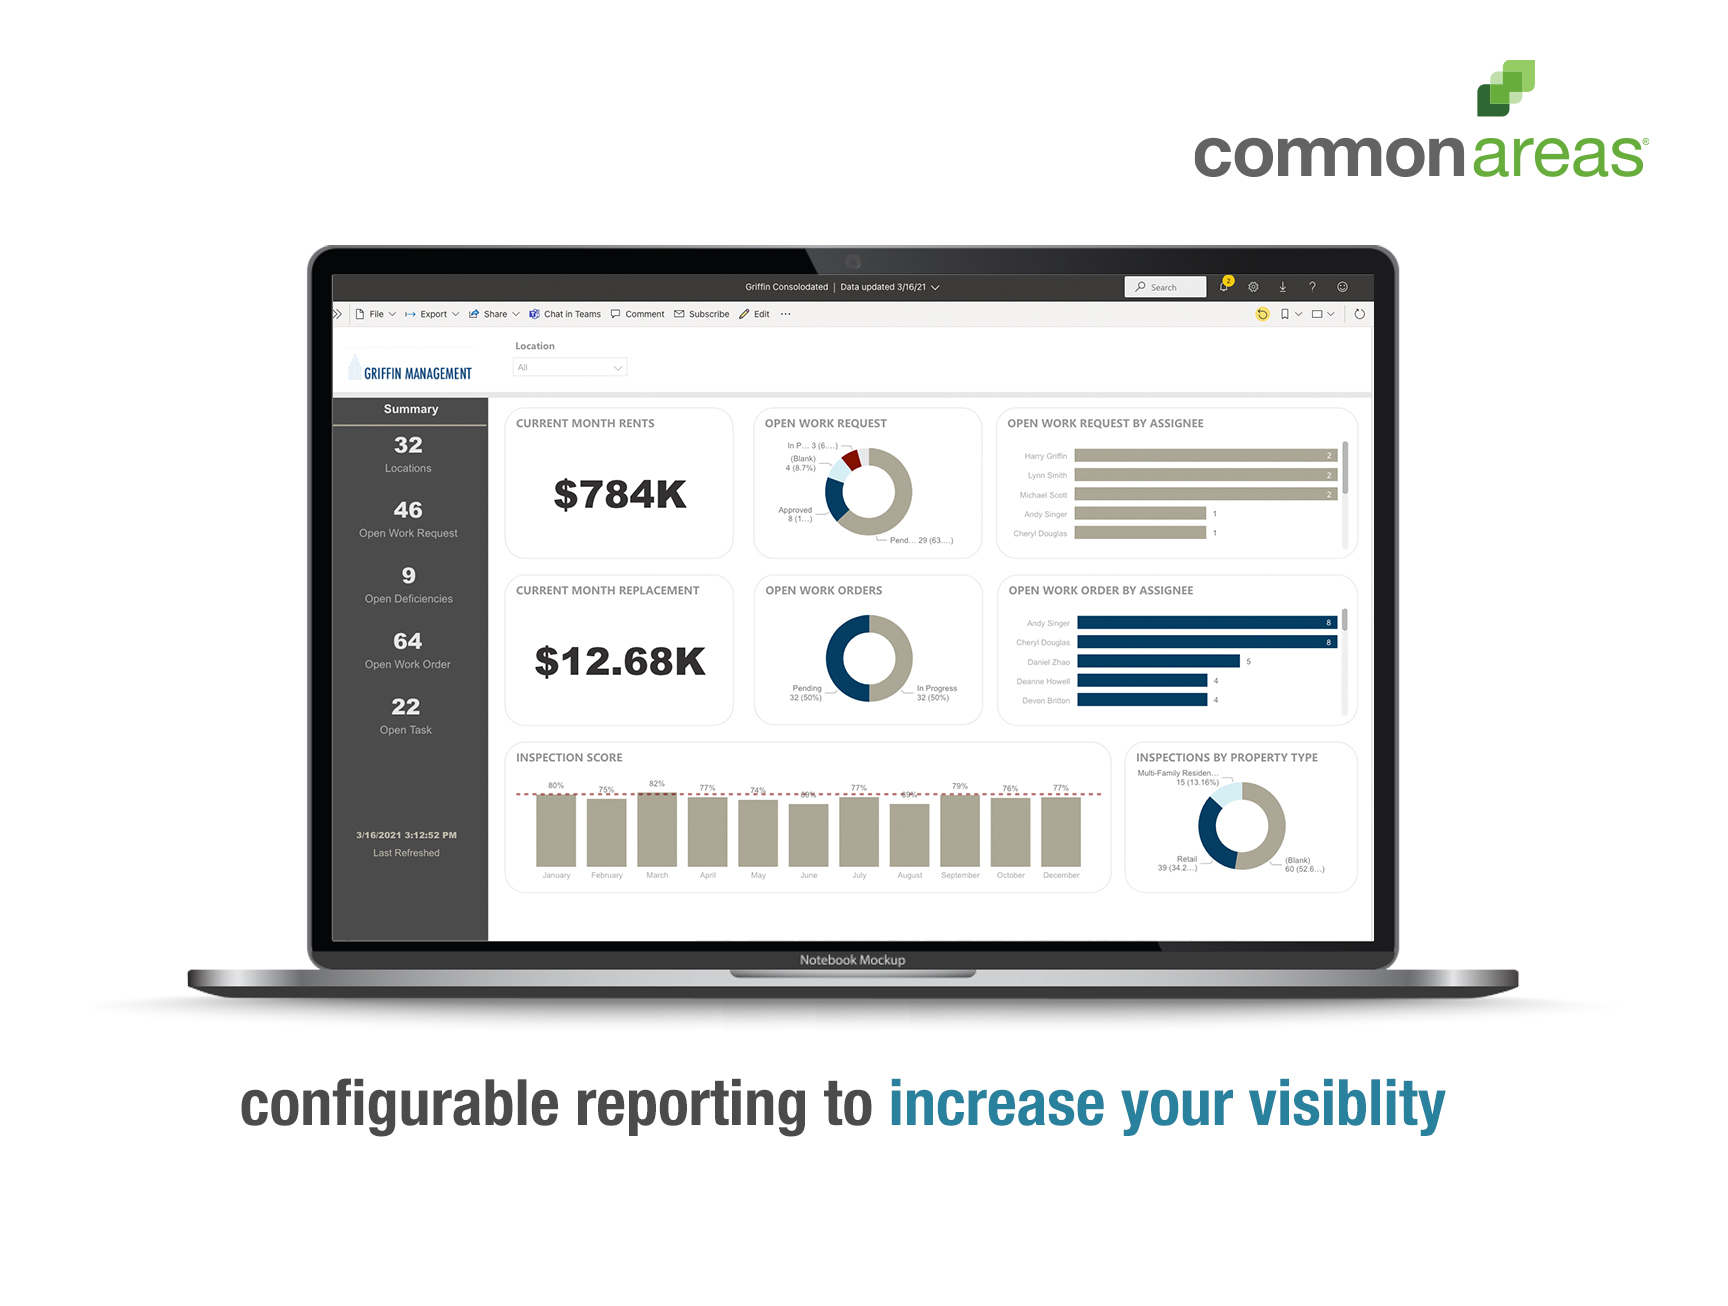 Common Areas simplifies and streamlines your property management operations to help you ensure quality standards are achieved, expectations are exceeded, and problems are resolved before they get out of hand.